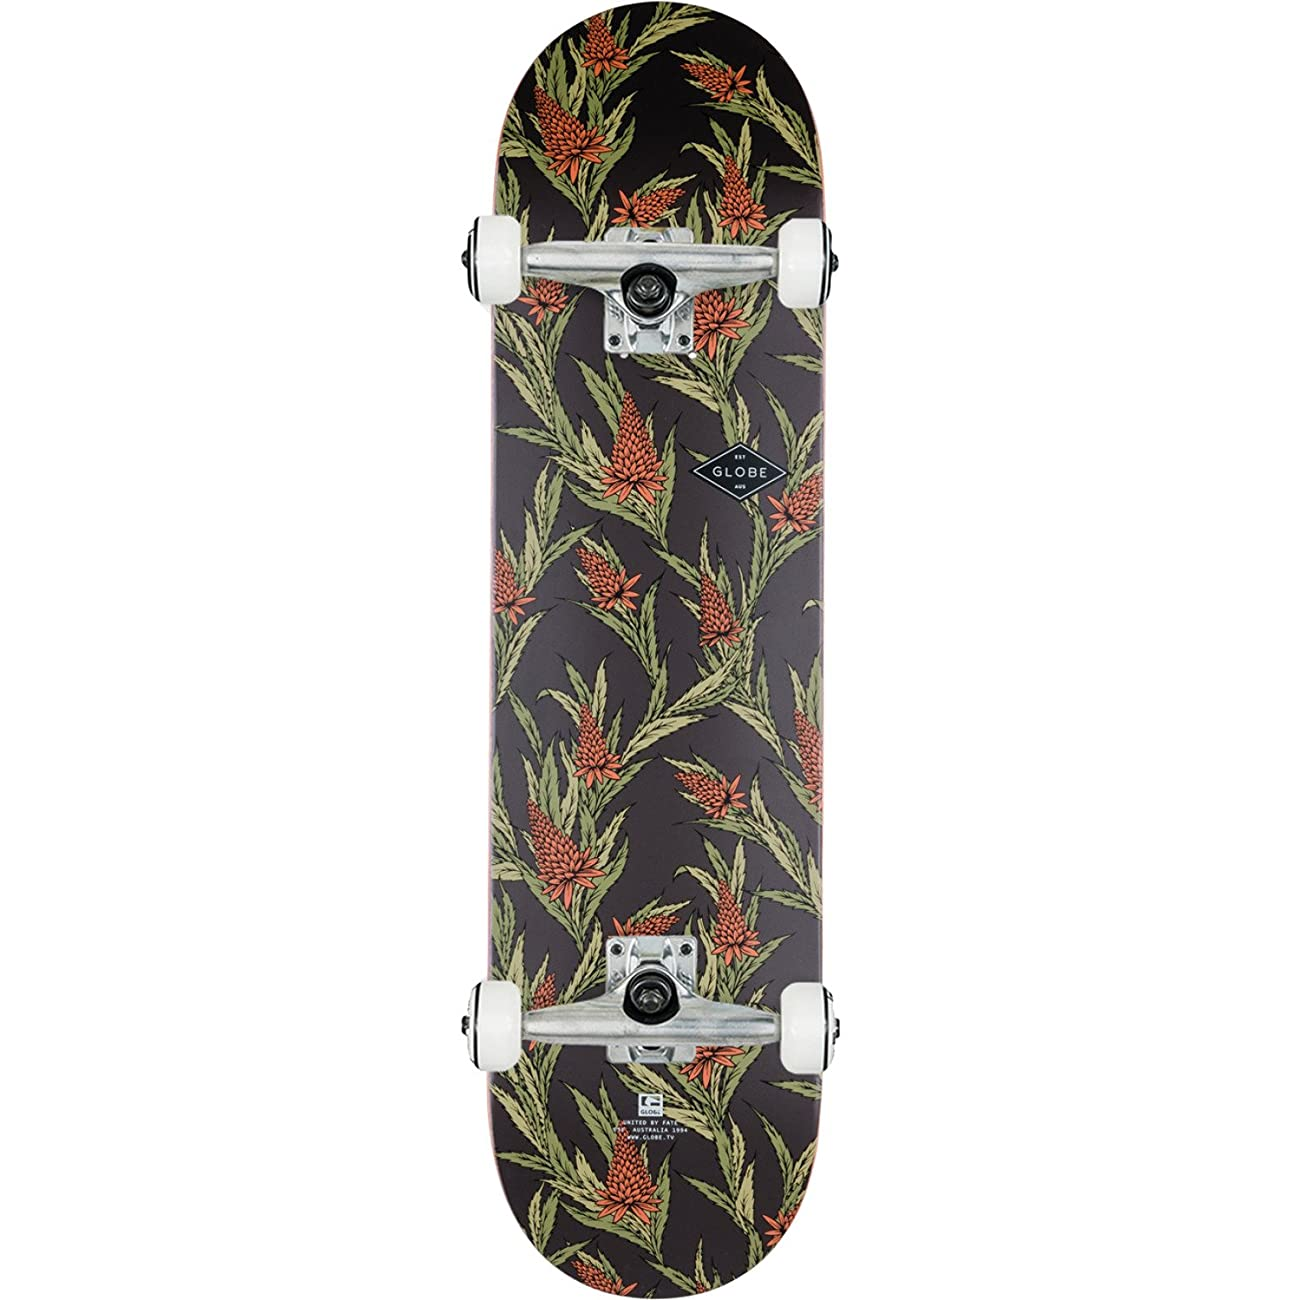 Globe Full On Vintage Black / Thistle Complete Skateboard - 8